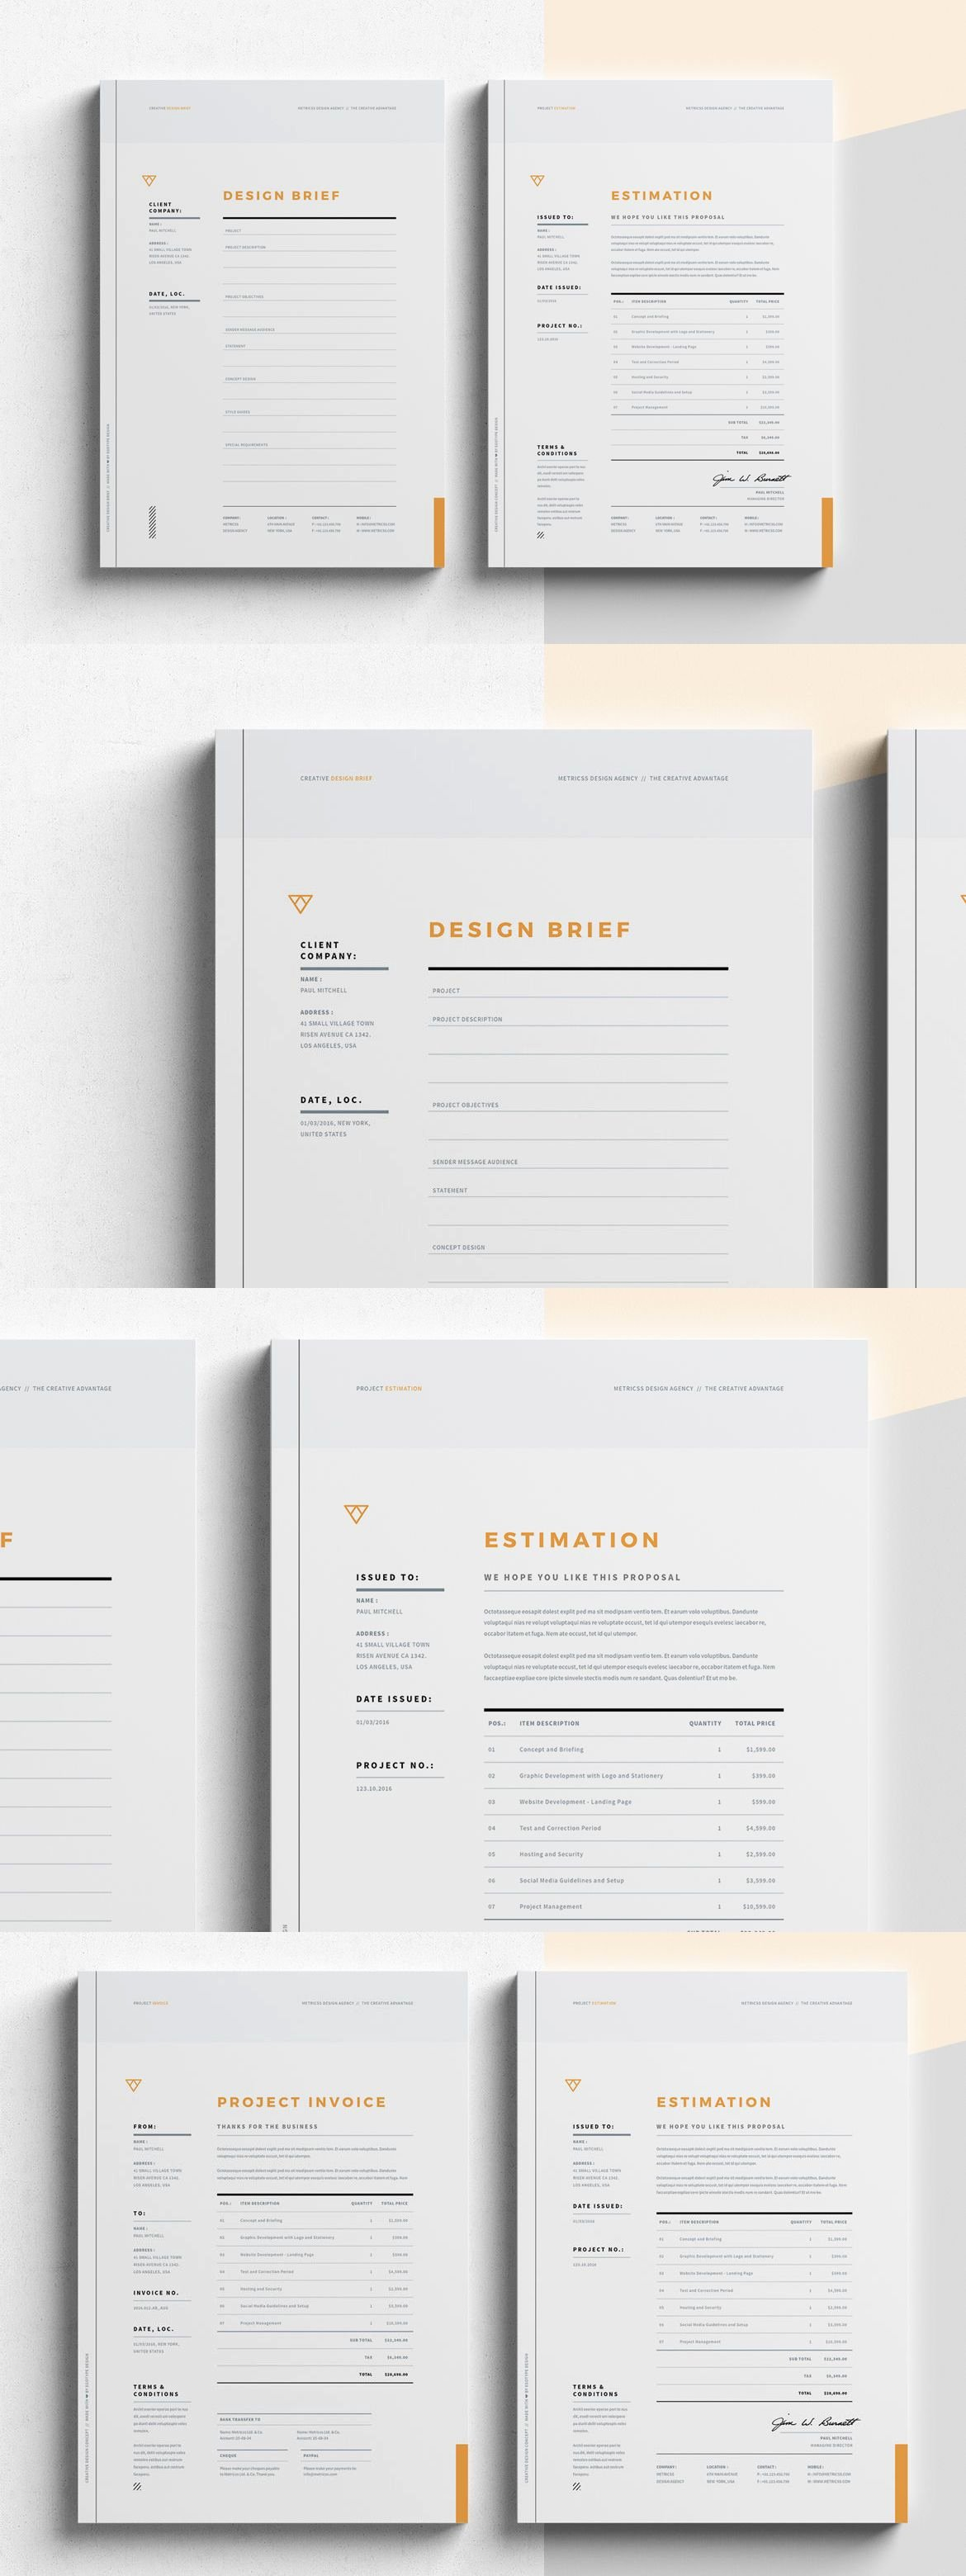 Graphic Design Estimate Template Lovely Brief Estimation Invoice Templates Indesign Indd